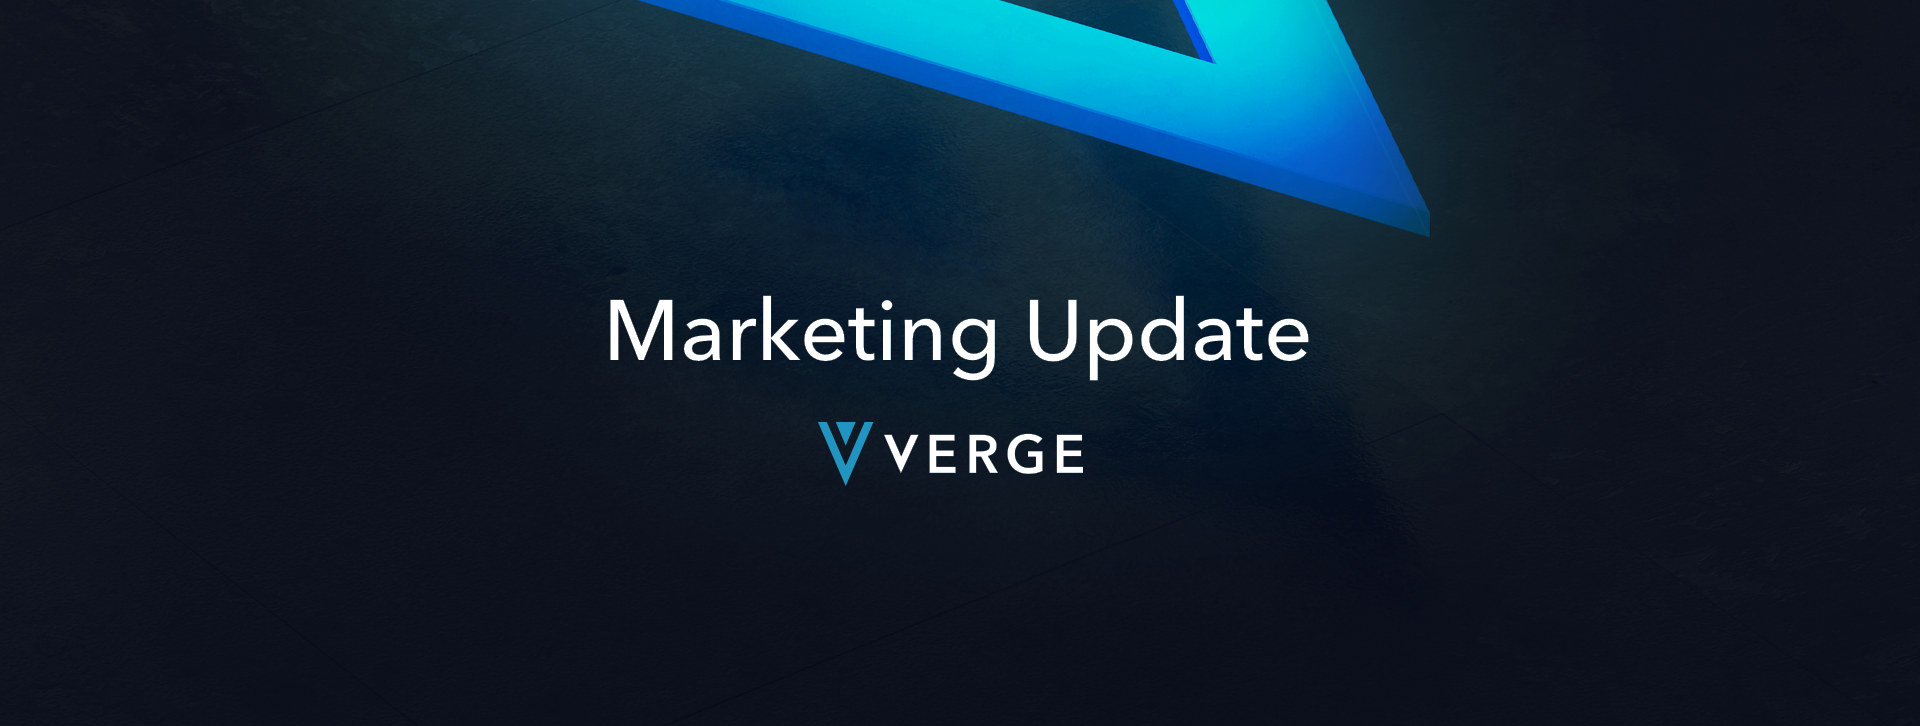 Marketing Update on Verge #1 - vergecurrency - Medium